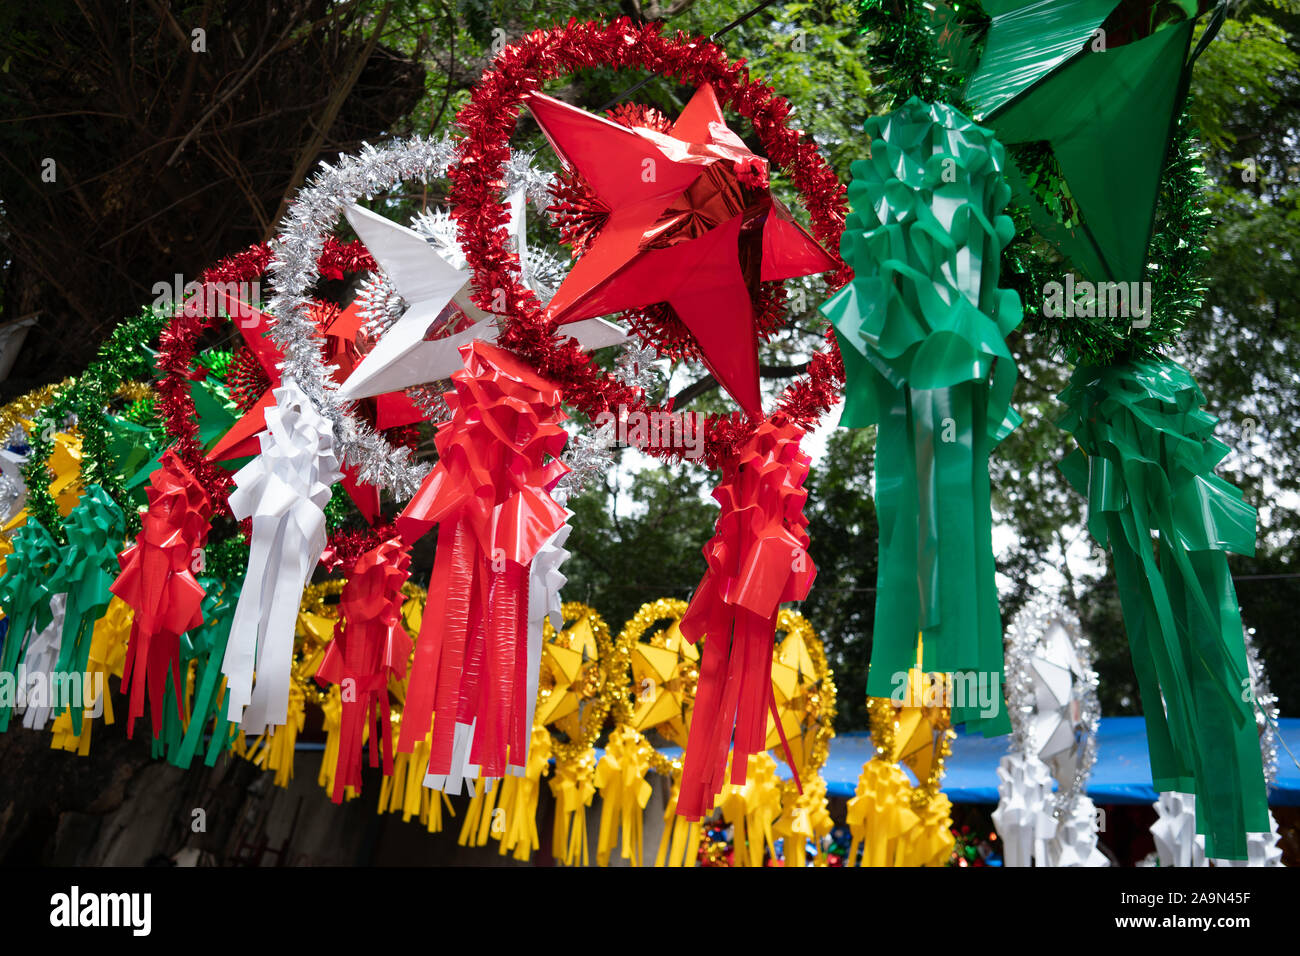 Star Lantern Xmas Decorations High Resolution Stock Photography And Images Alamy